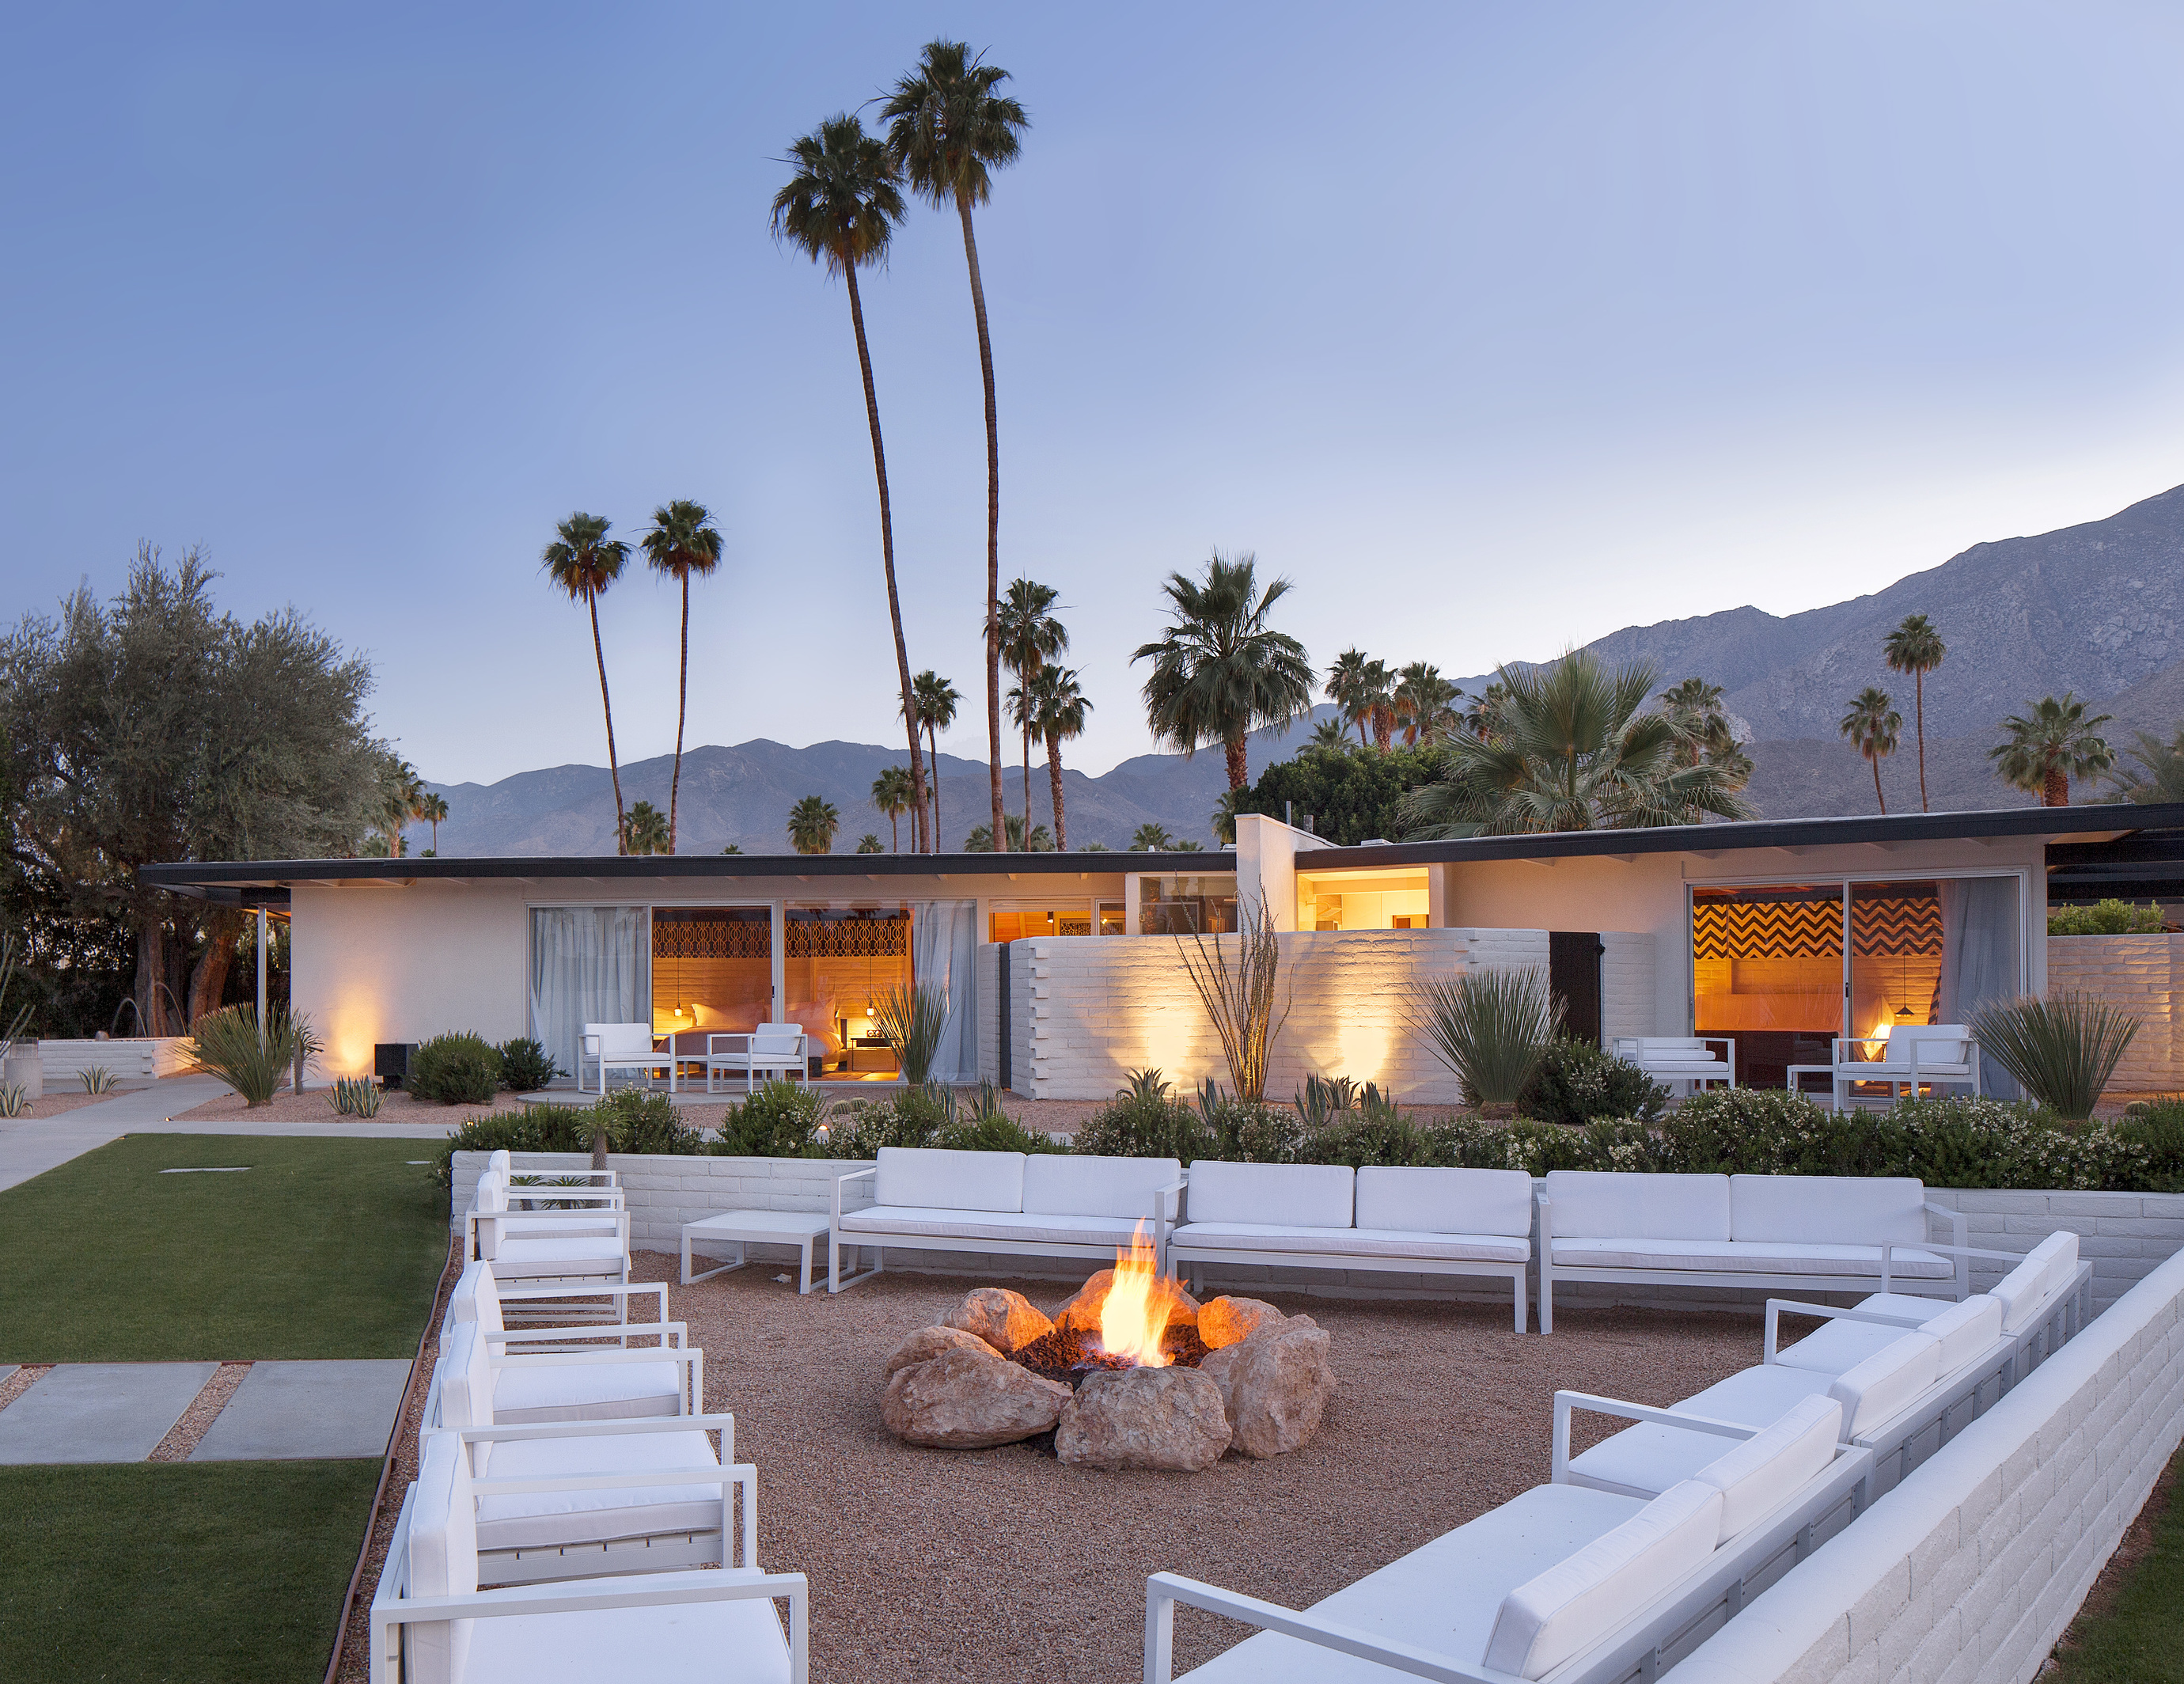 Modern white outdoor lounge chairs in a triangle configuration surround a rock fire pit with the one-story accommodations in the background.